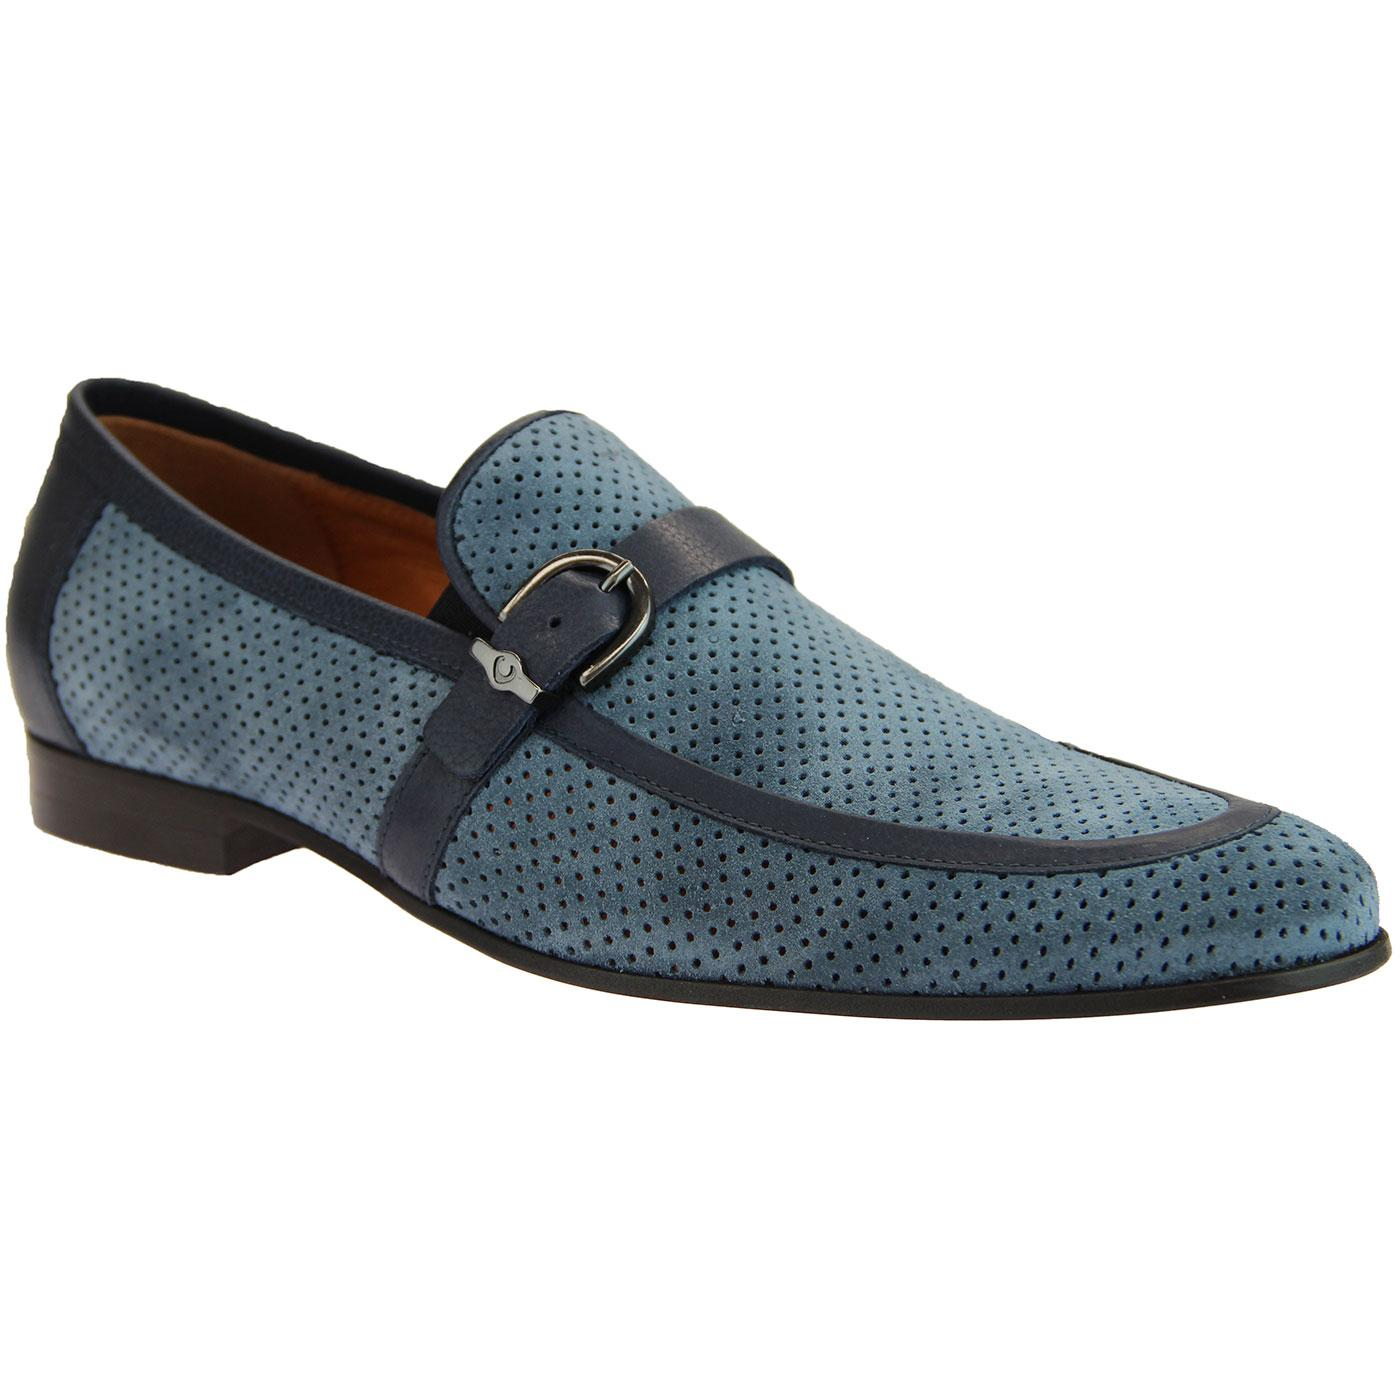 LACUZZO Mens 60s Mod Perforated Suede Loafers BLUE